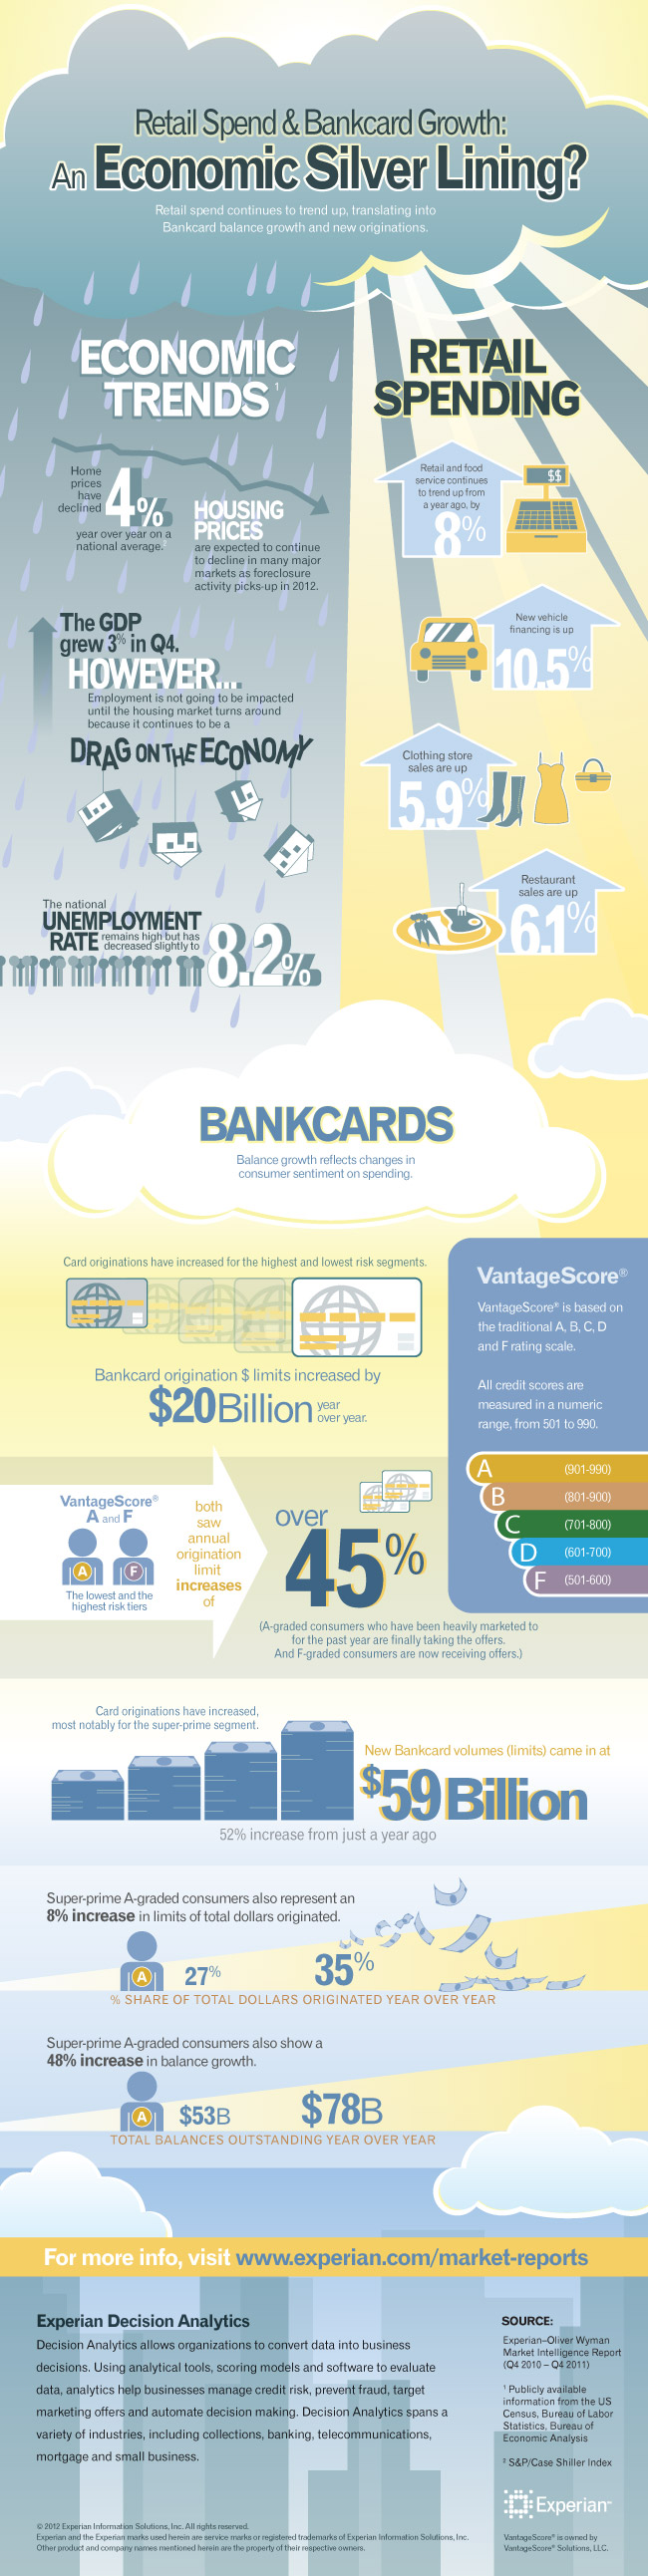 Bankcard and Retail Spend Trends